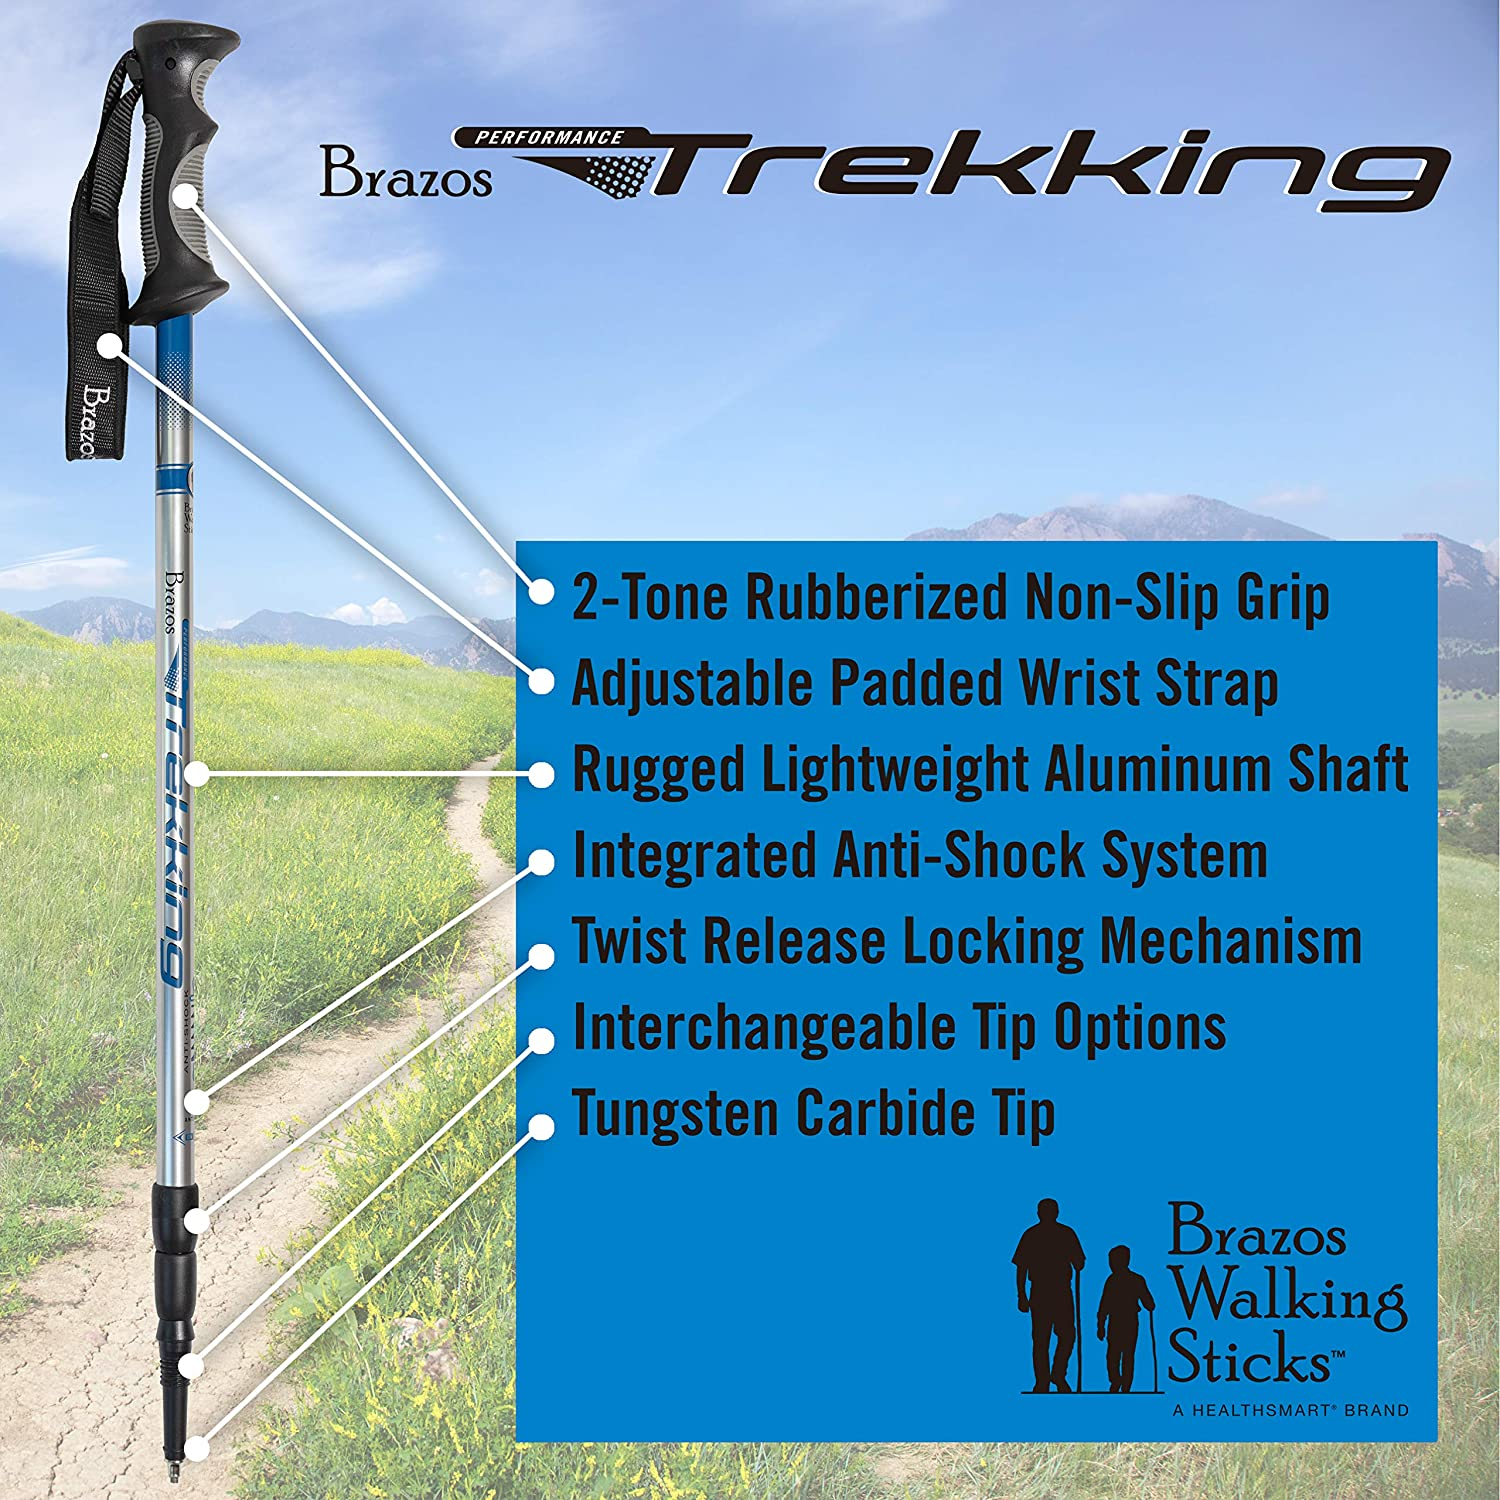 Brazos Walking Sticks Trekking Poles Collapsible Hiking Walking Stick with Integrated Anti Shock Technology and Interchangeable Tip – Adjustable Height Trail Poles for Men and Women – 2 Pack, Blue